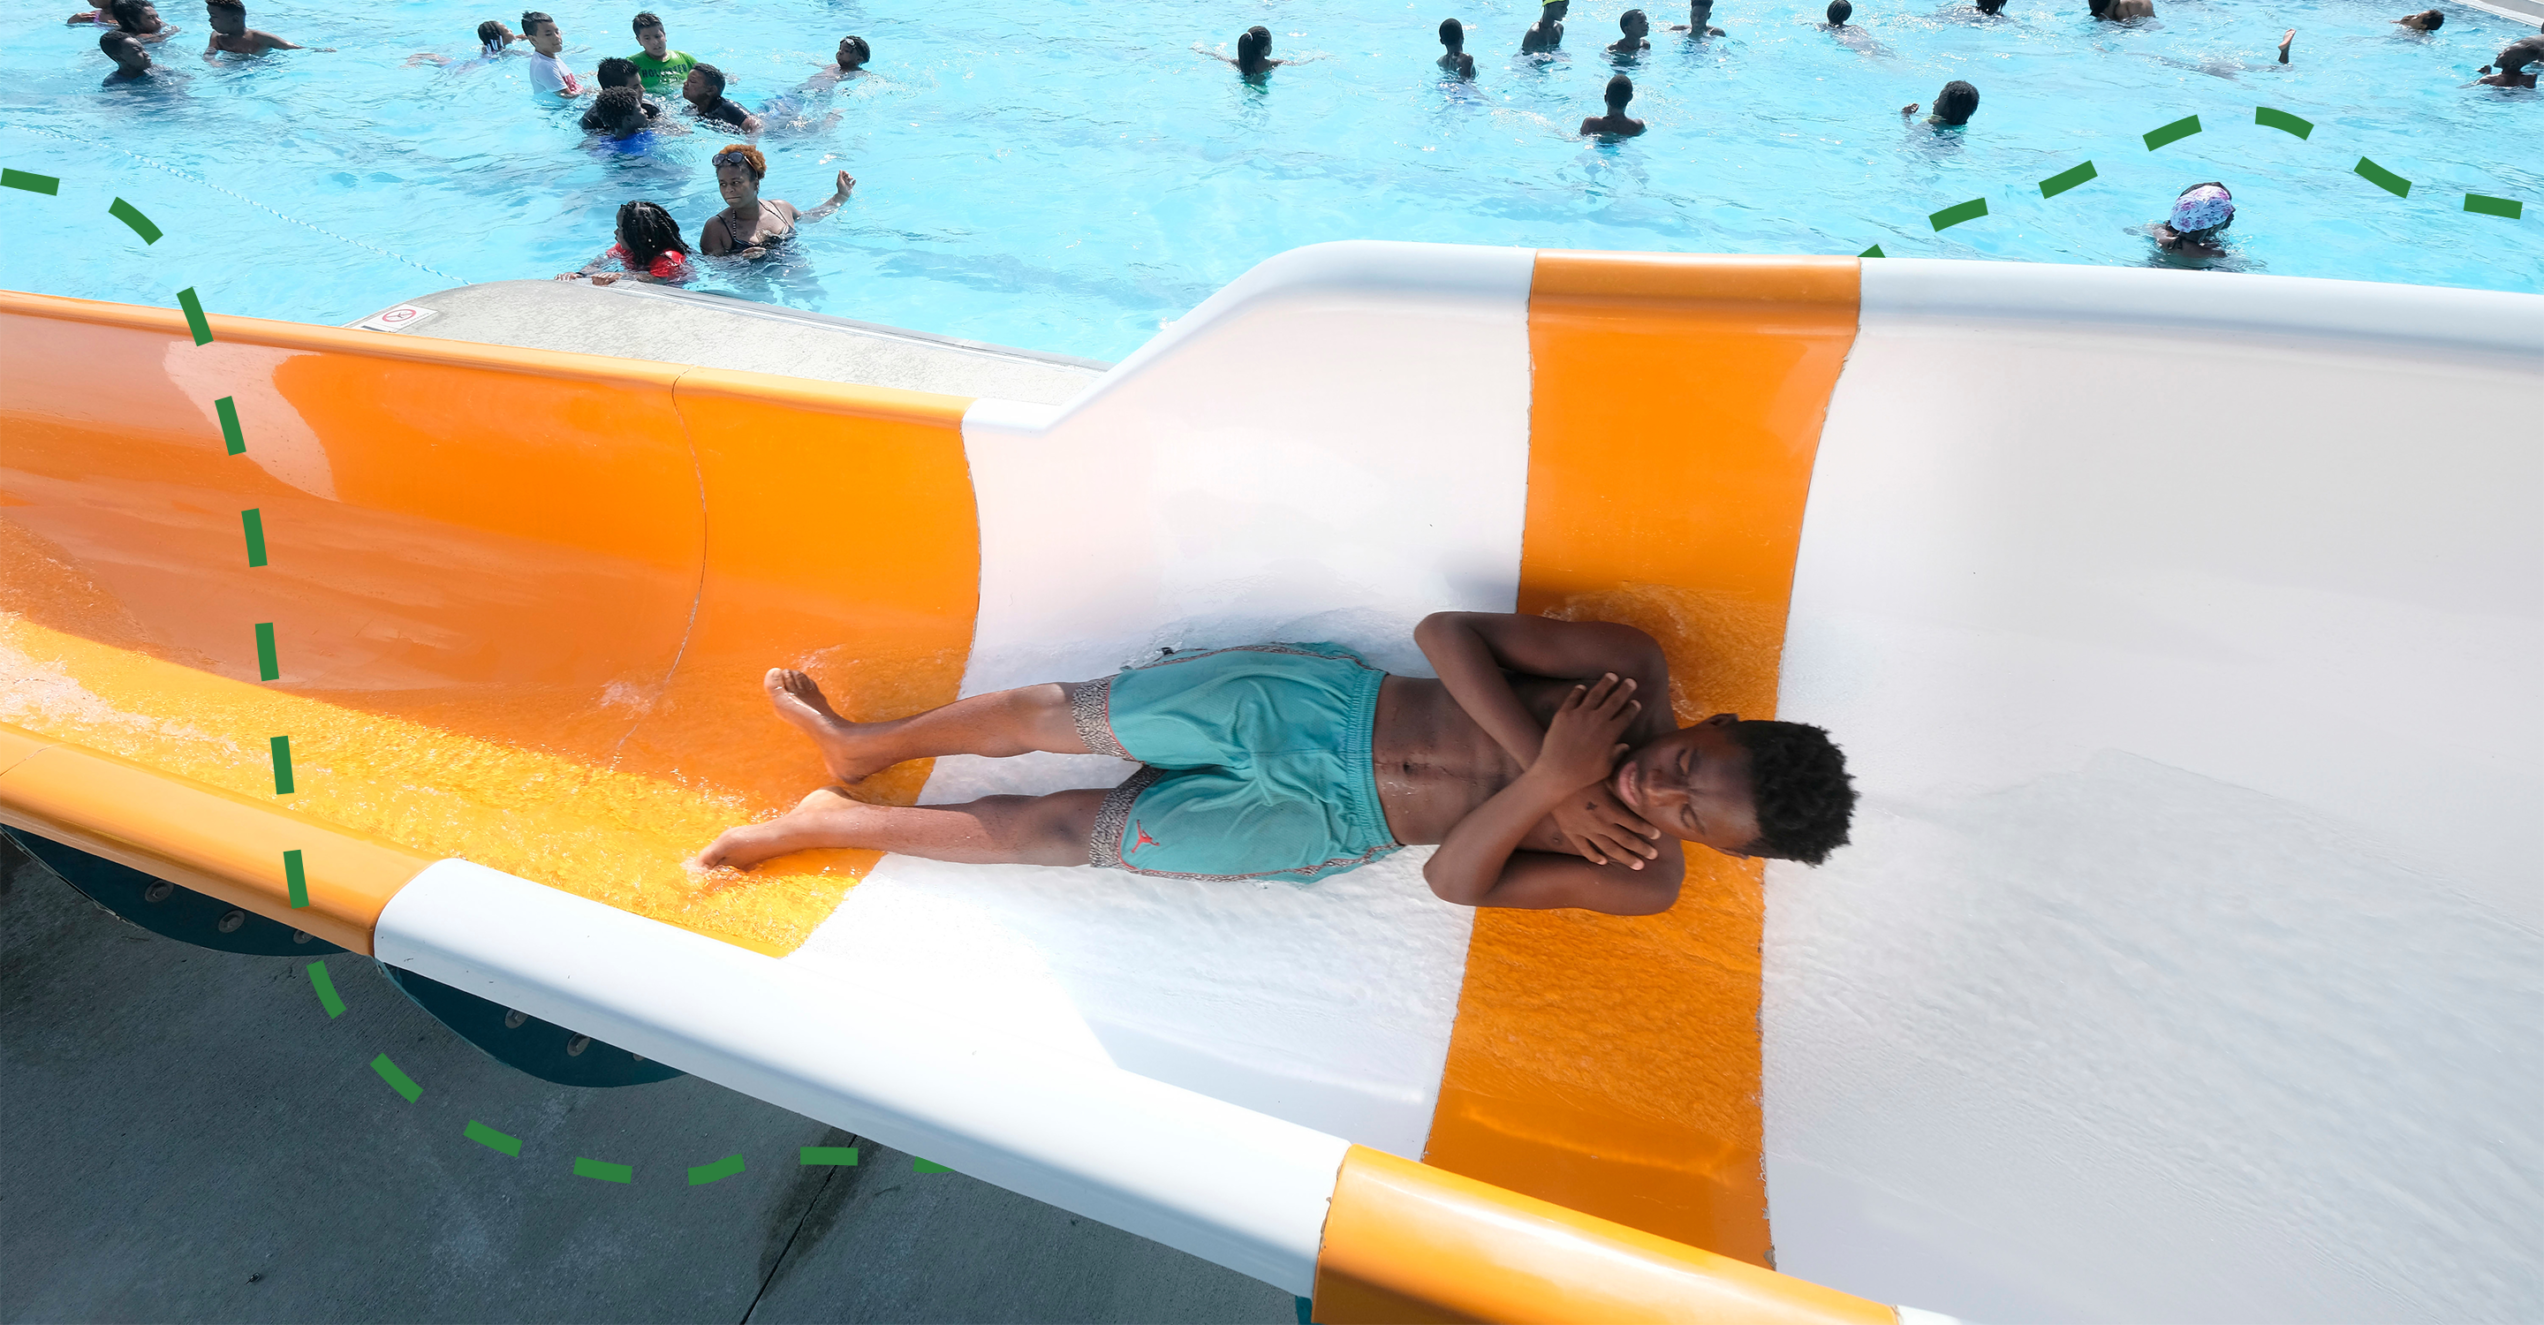 A young man riding down on an orange waterslide, with a swimming pool in the background.